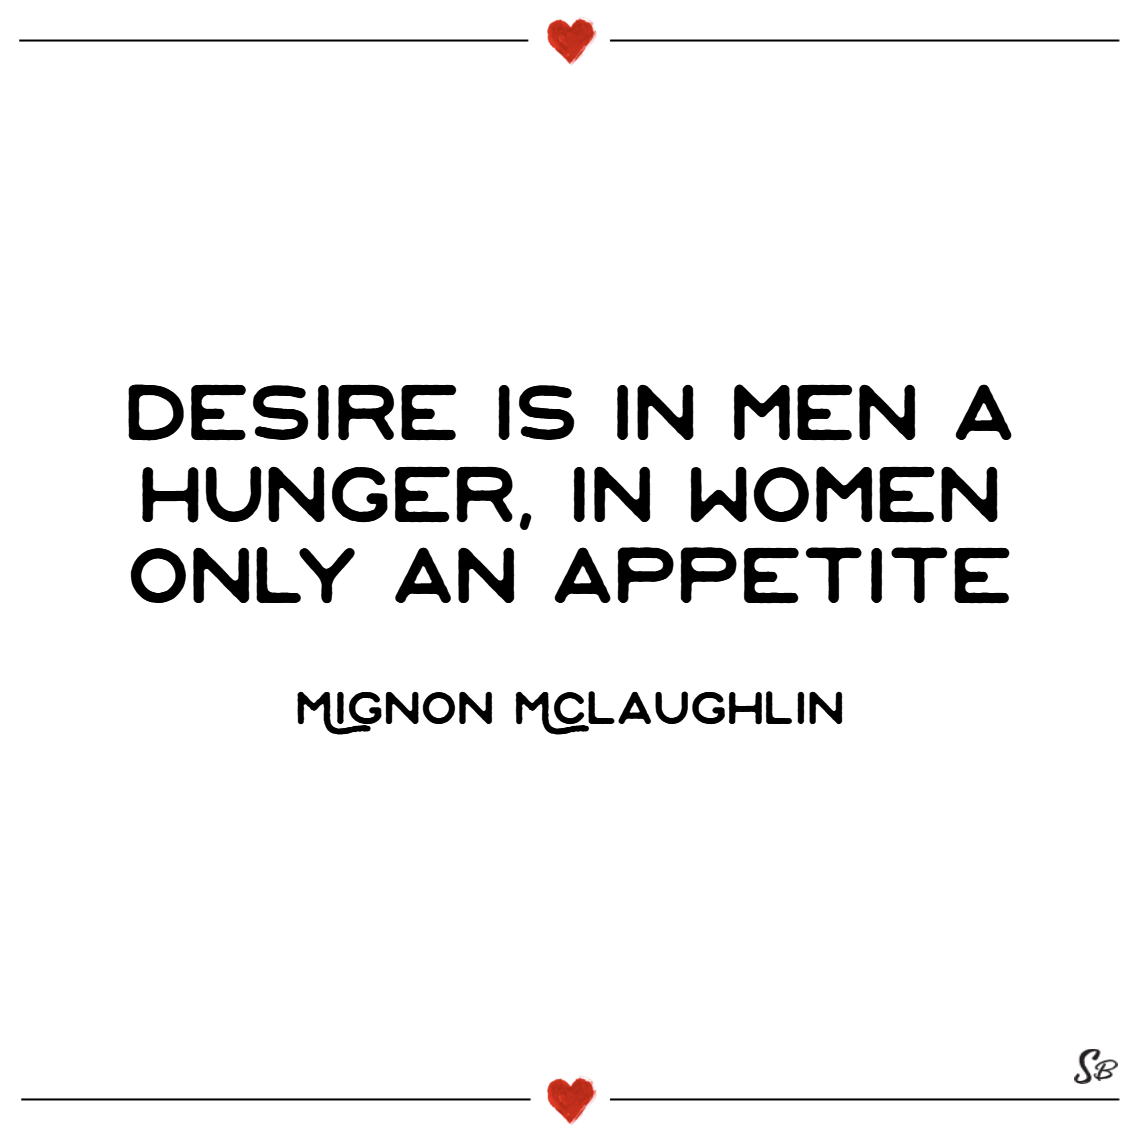 Desire is in men a hunger, in women only an appetite. – mignon mclaughlin